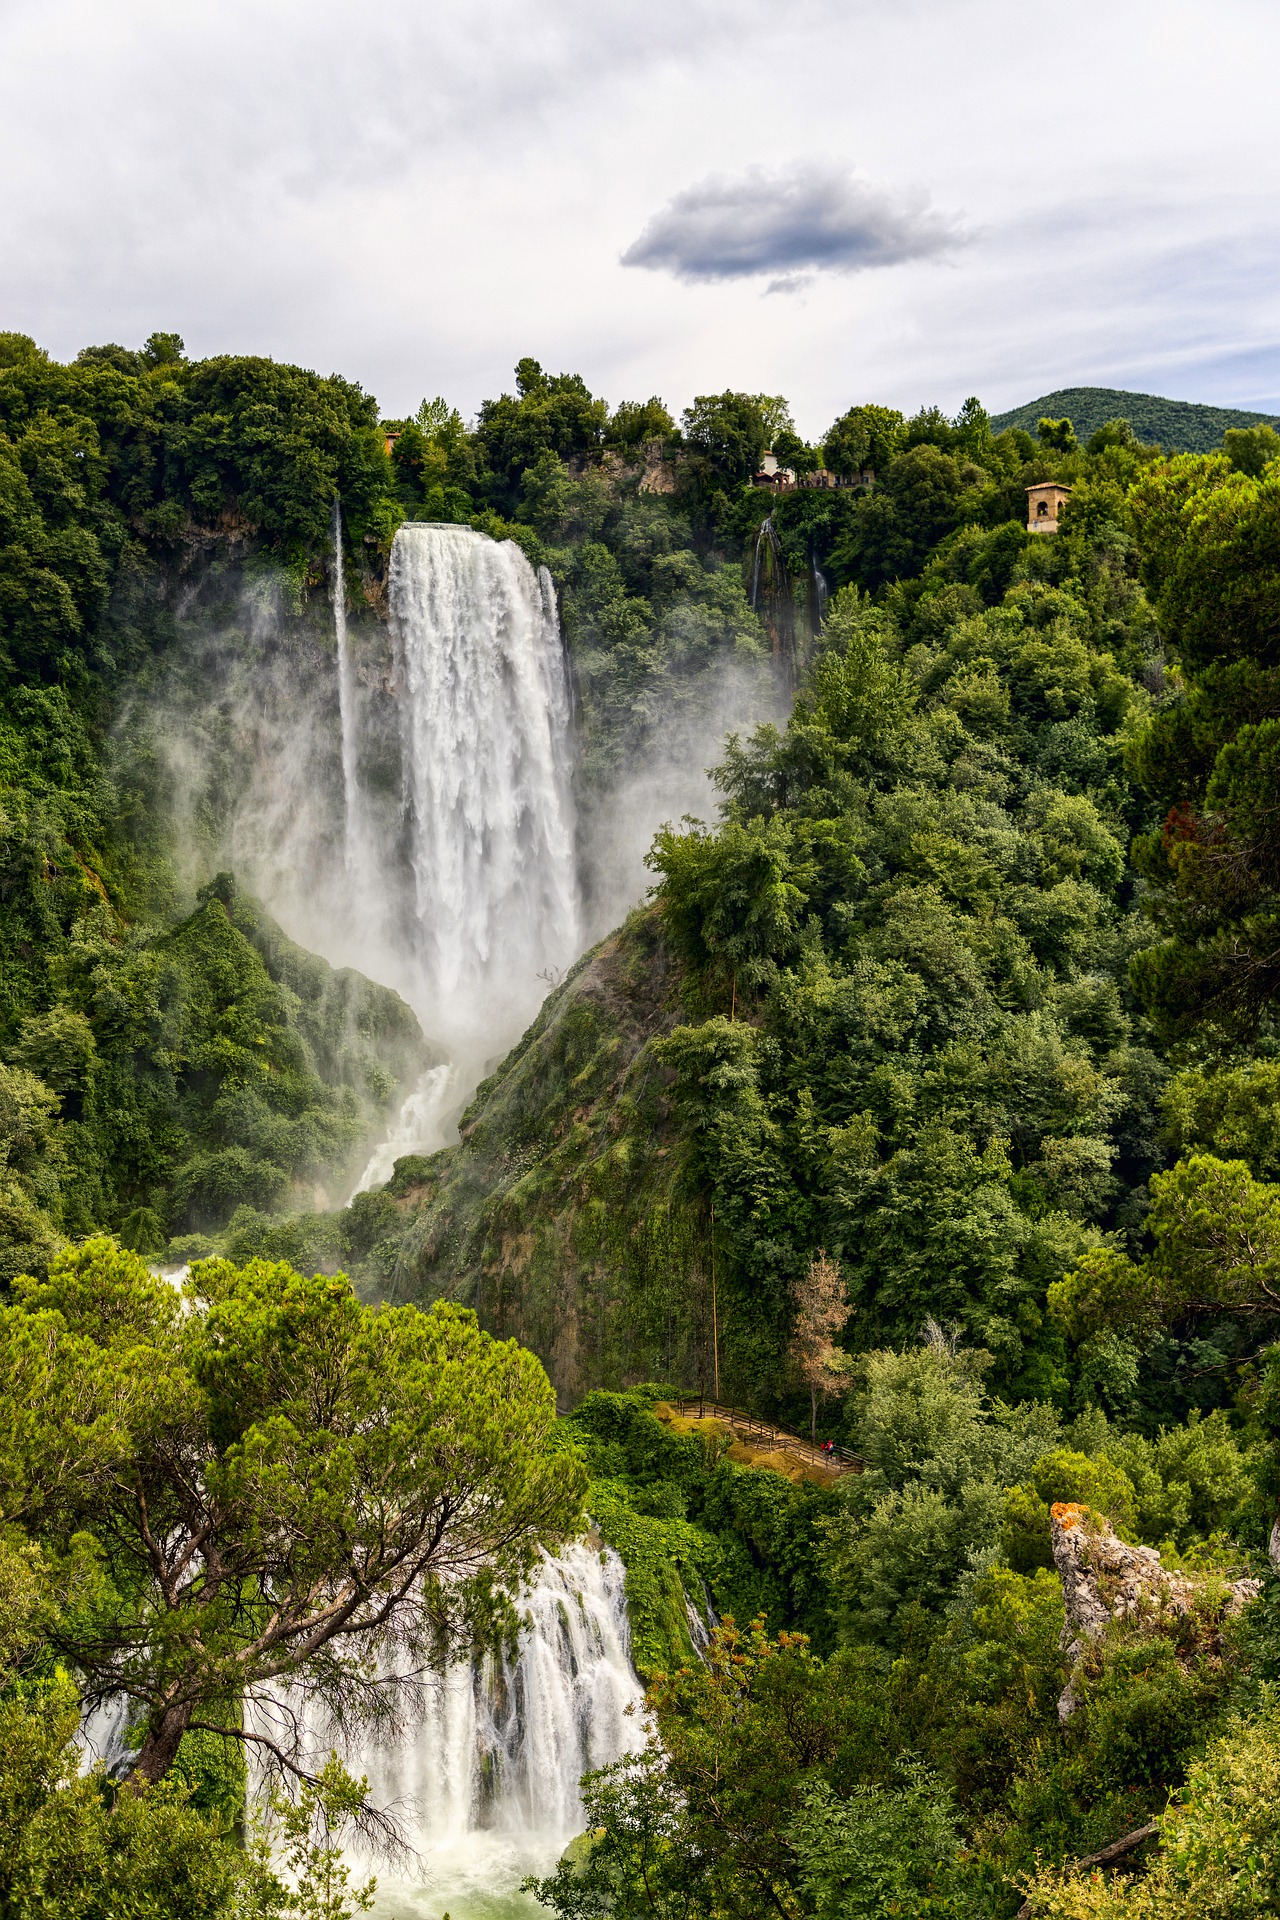 the-waterfall-marmore-4587240_1920